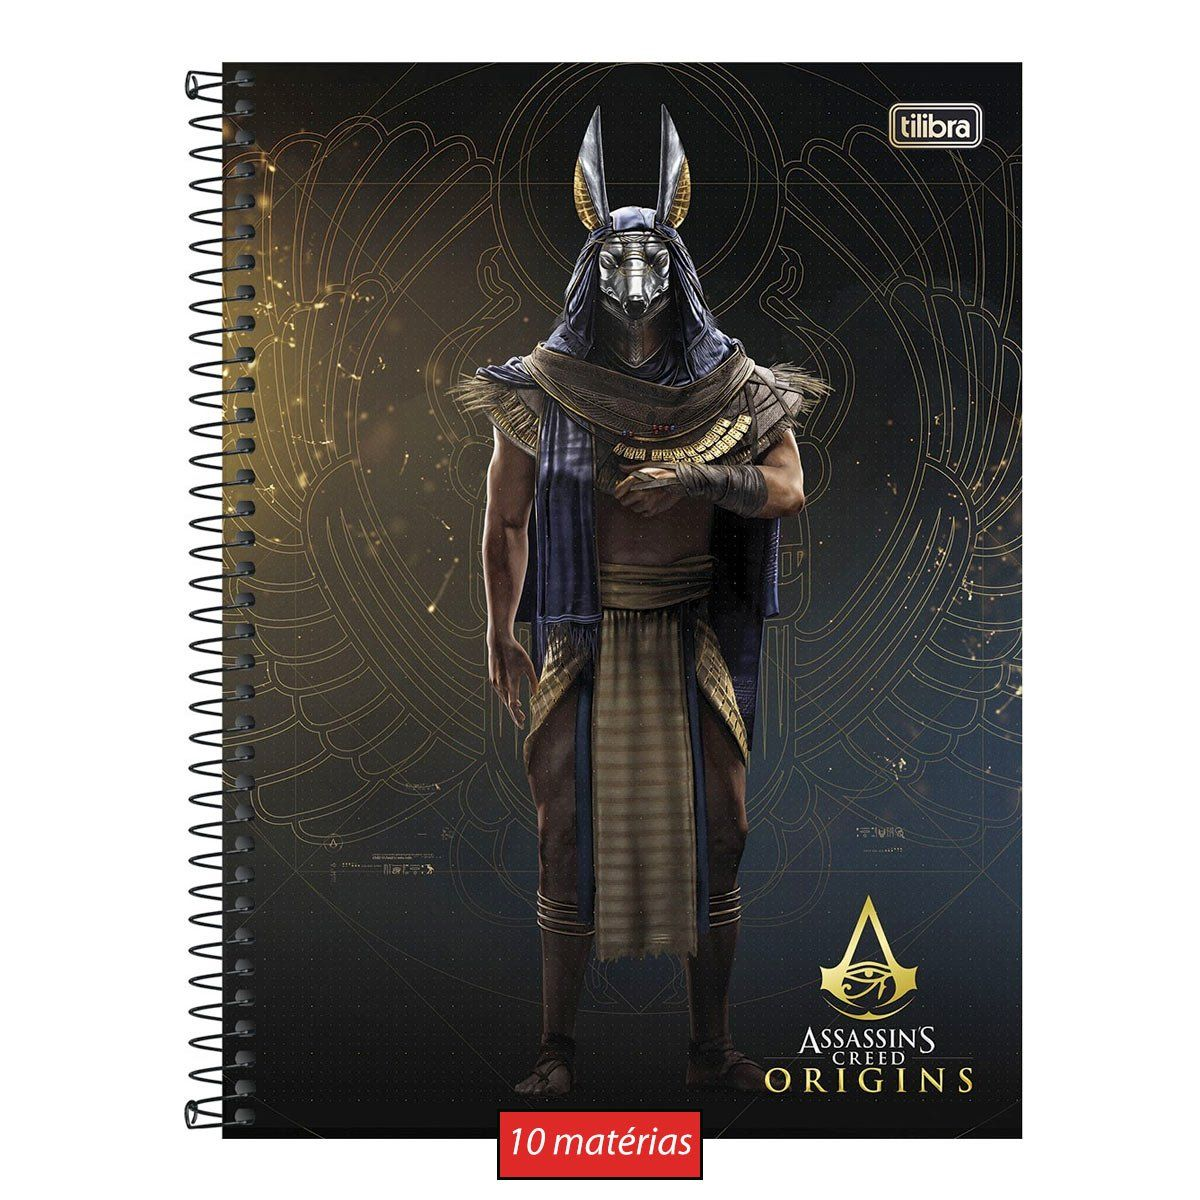 Caderno Assassin's Creed Annubis 10 Matérias